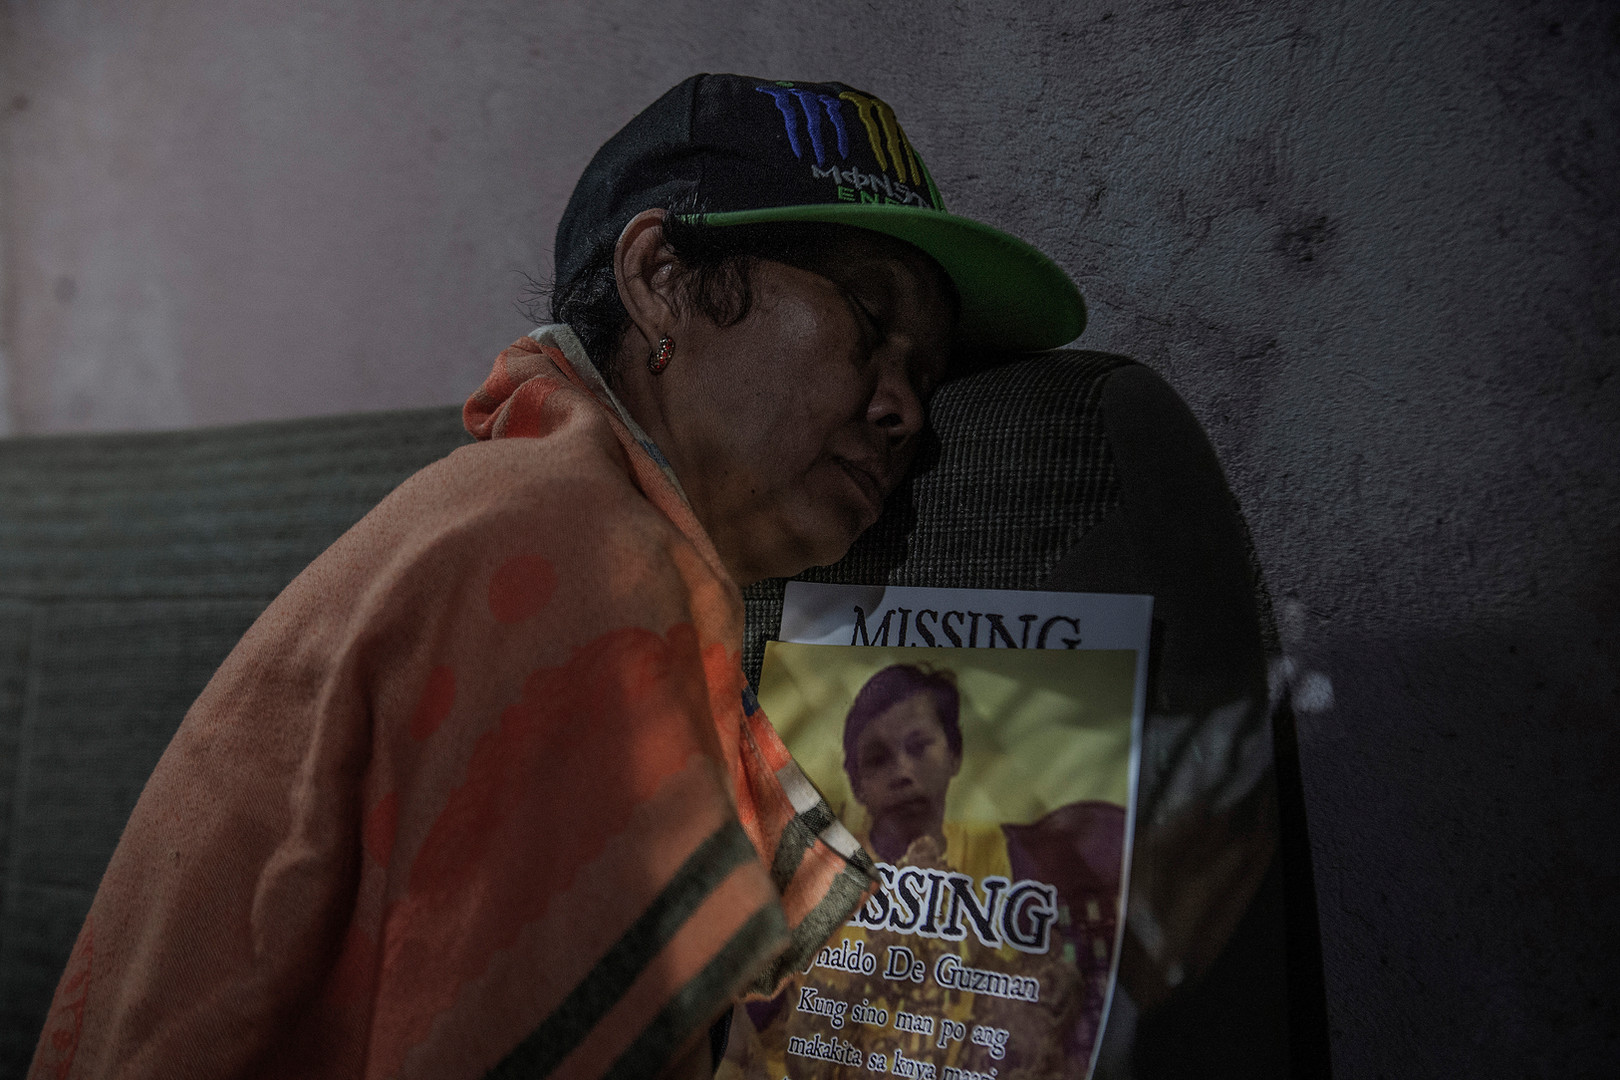 """Lina De Guzman holds a missing sign for his 14-year-old son Reynaldo """"Kulot"""" De Guzman. Kulot was last seen with his neighbor Carl Angelo Arnaiz on August 18, 2017 in Cainta, Rizal. Hours after they went missing, Carl allegedly robbed a taxi and figured in a shootout with police officers ten kilometers away in Caloocan. Police say packets of shabu and marijuana were recovered from Arnaiz. Kulot remained missing until 20 days later when his body was found some 100 kilometers away floating in a creek in Gapan, Nueva Ecija. His body bore 30 stab wounds and his head was wrapped in tape."""